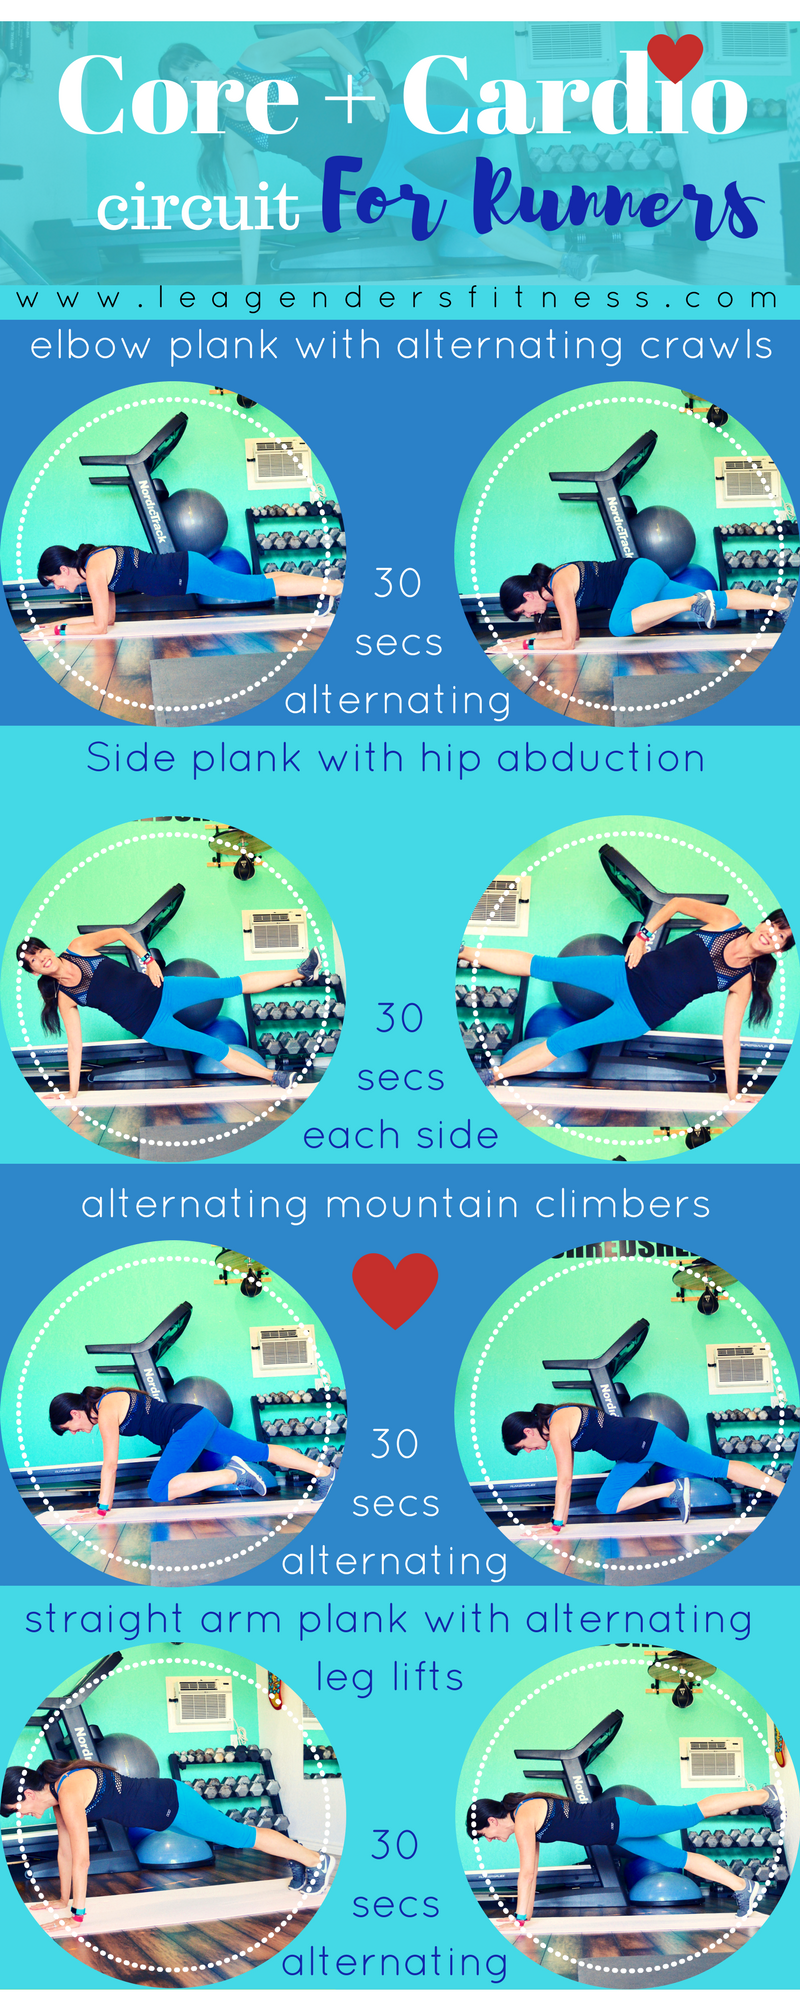 Core + Cardio circuit for runners